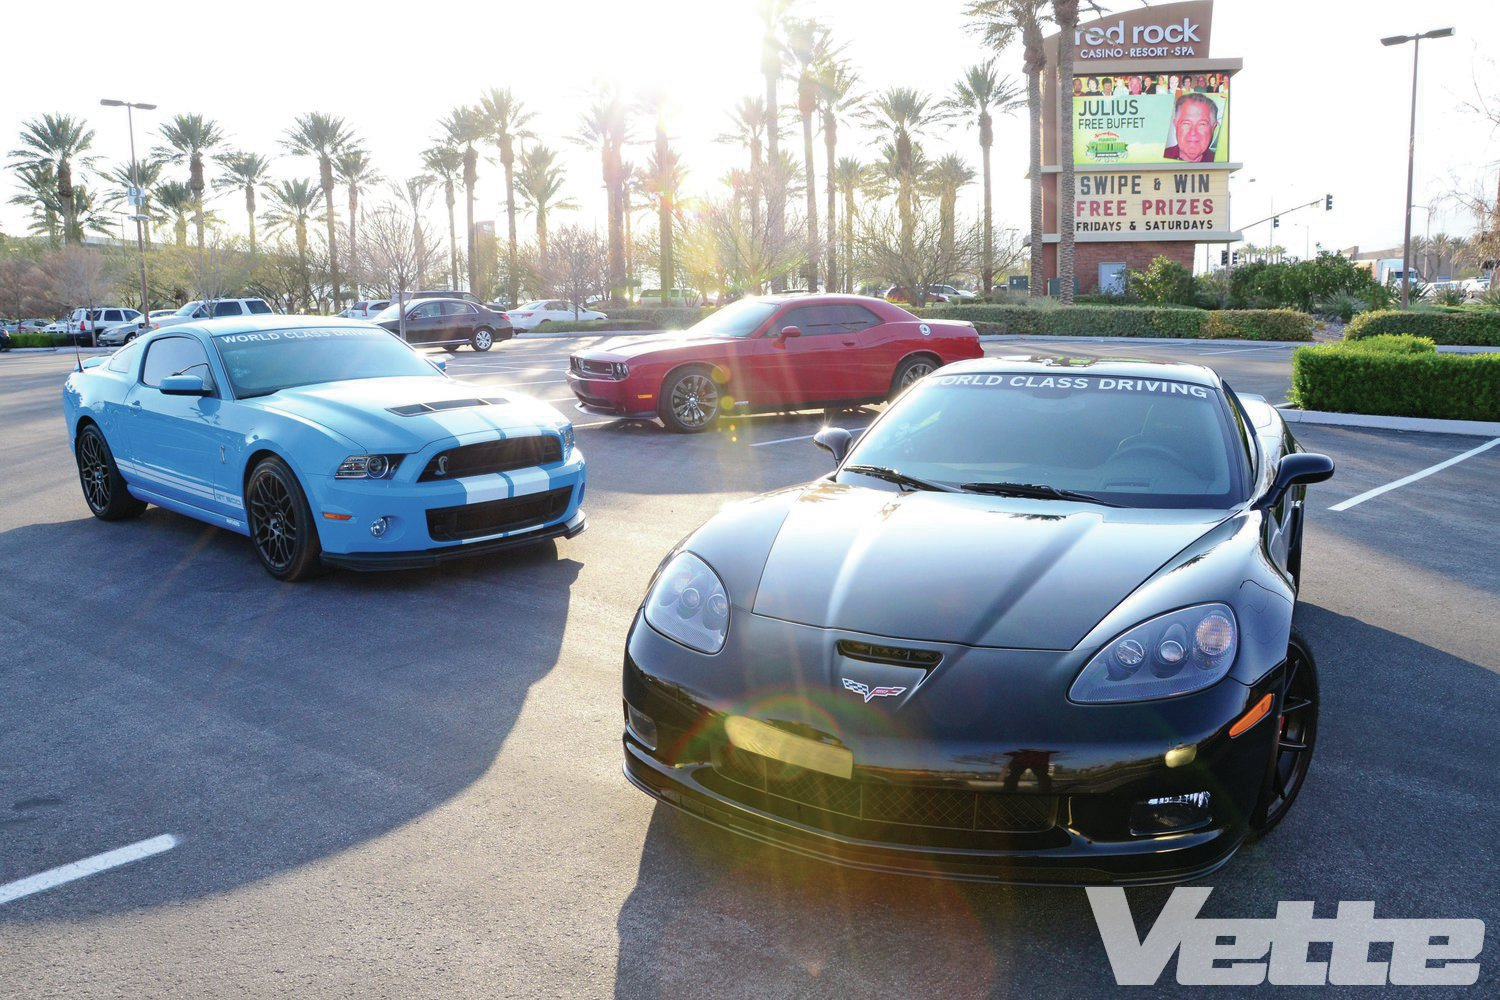 World Class Driving's American Muscle Car Experience